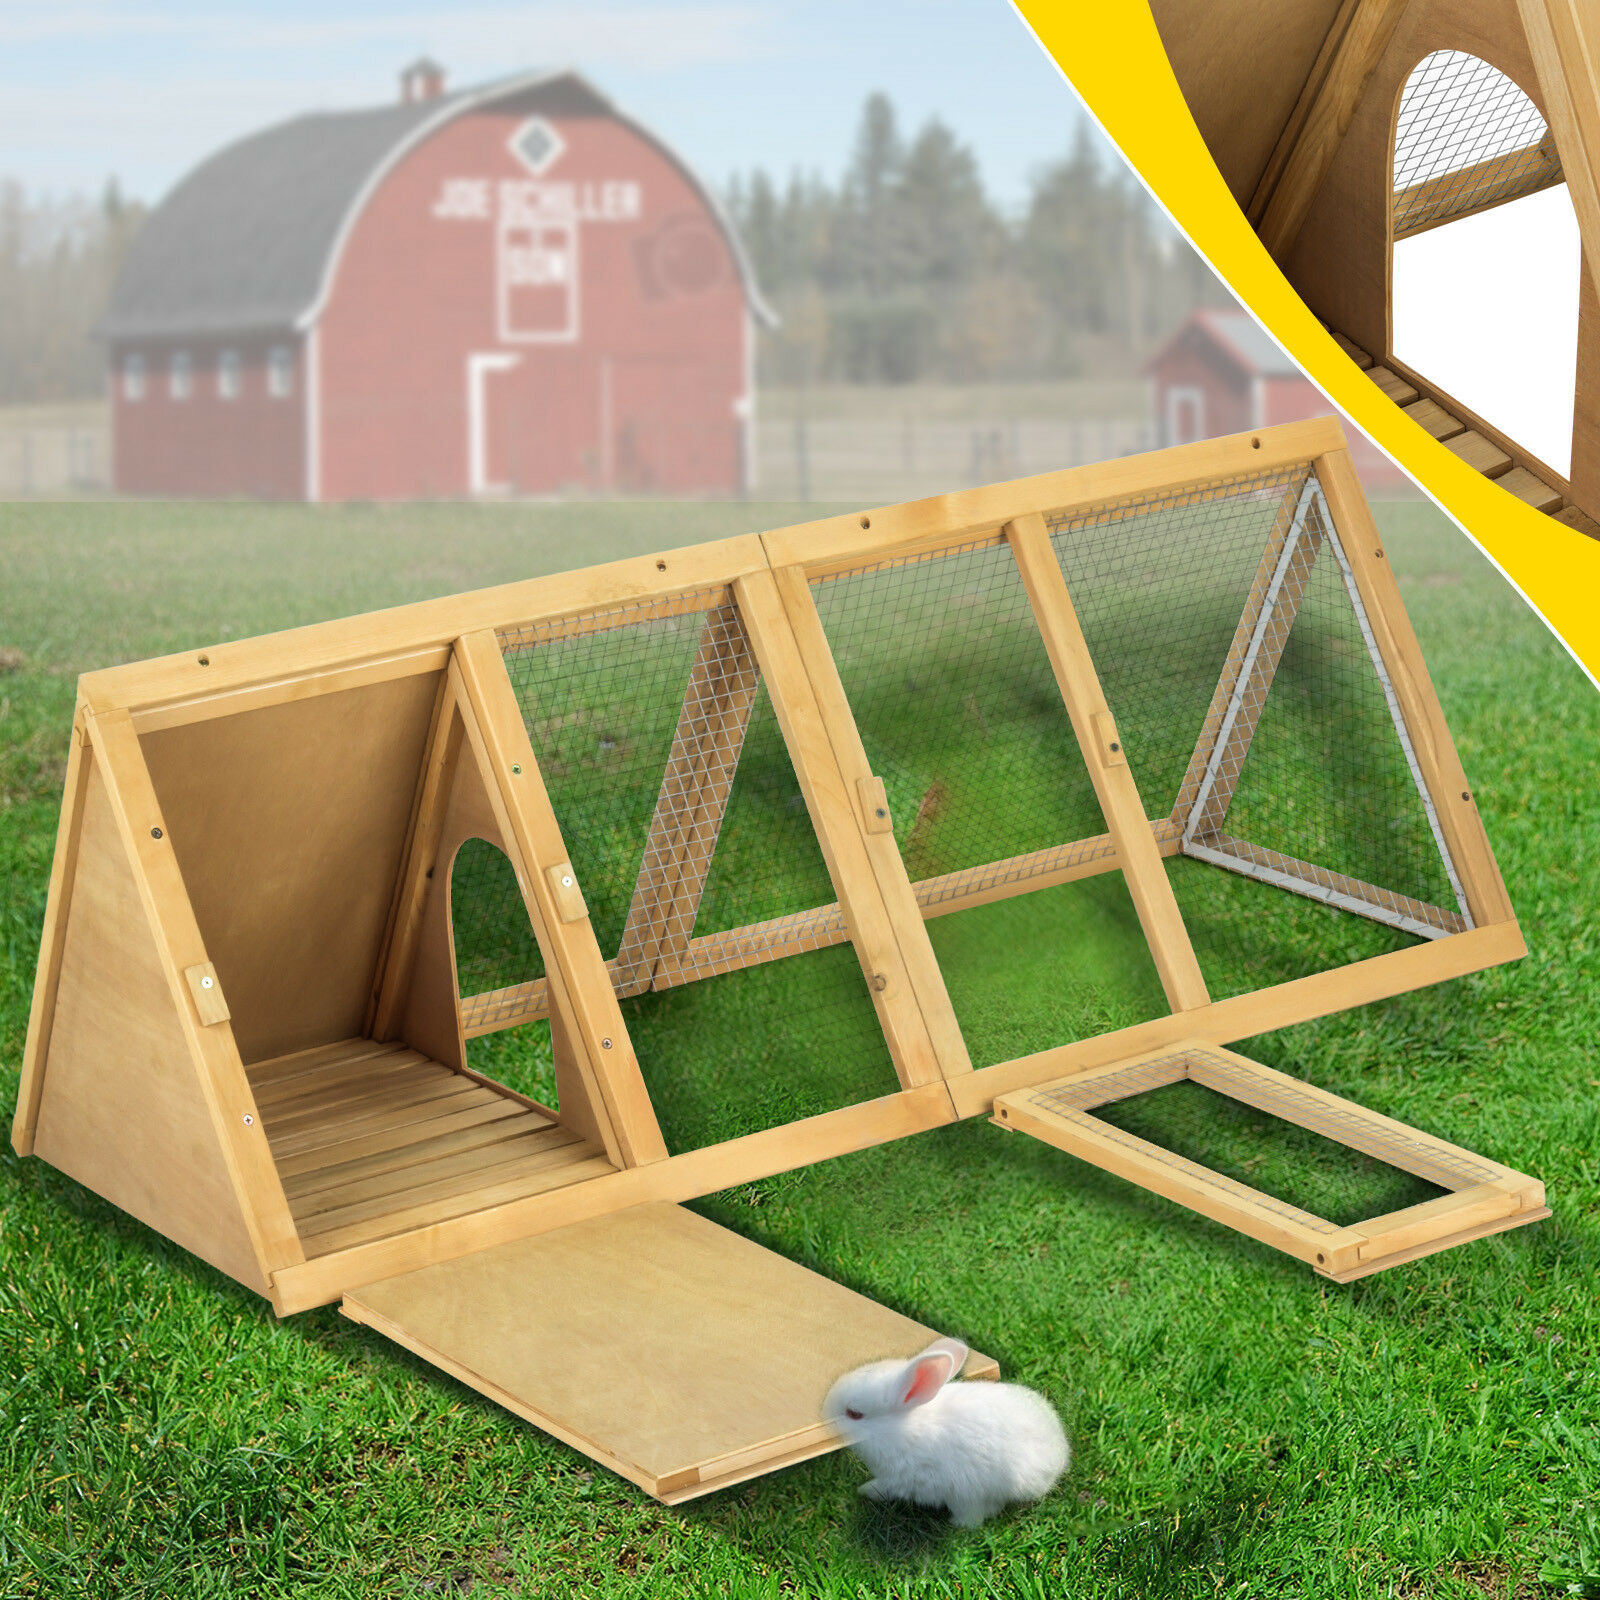 Wooden Rabbit Coop A-Frame Hutch Cage Small Animal Pet House Run Outdoor